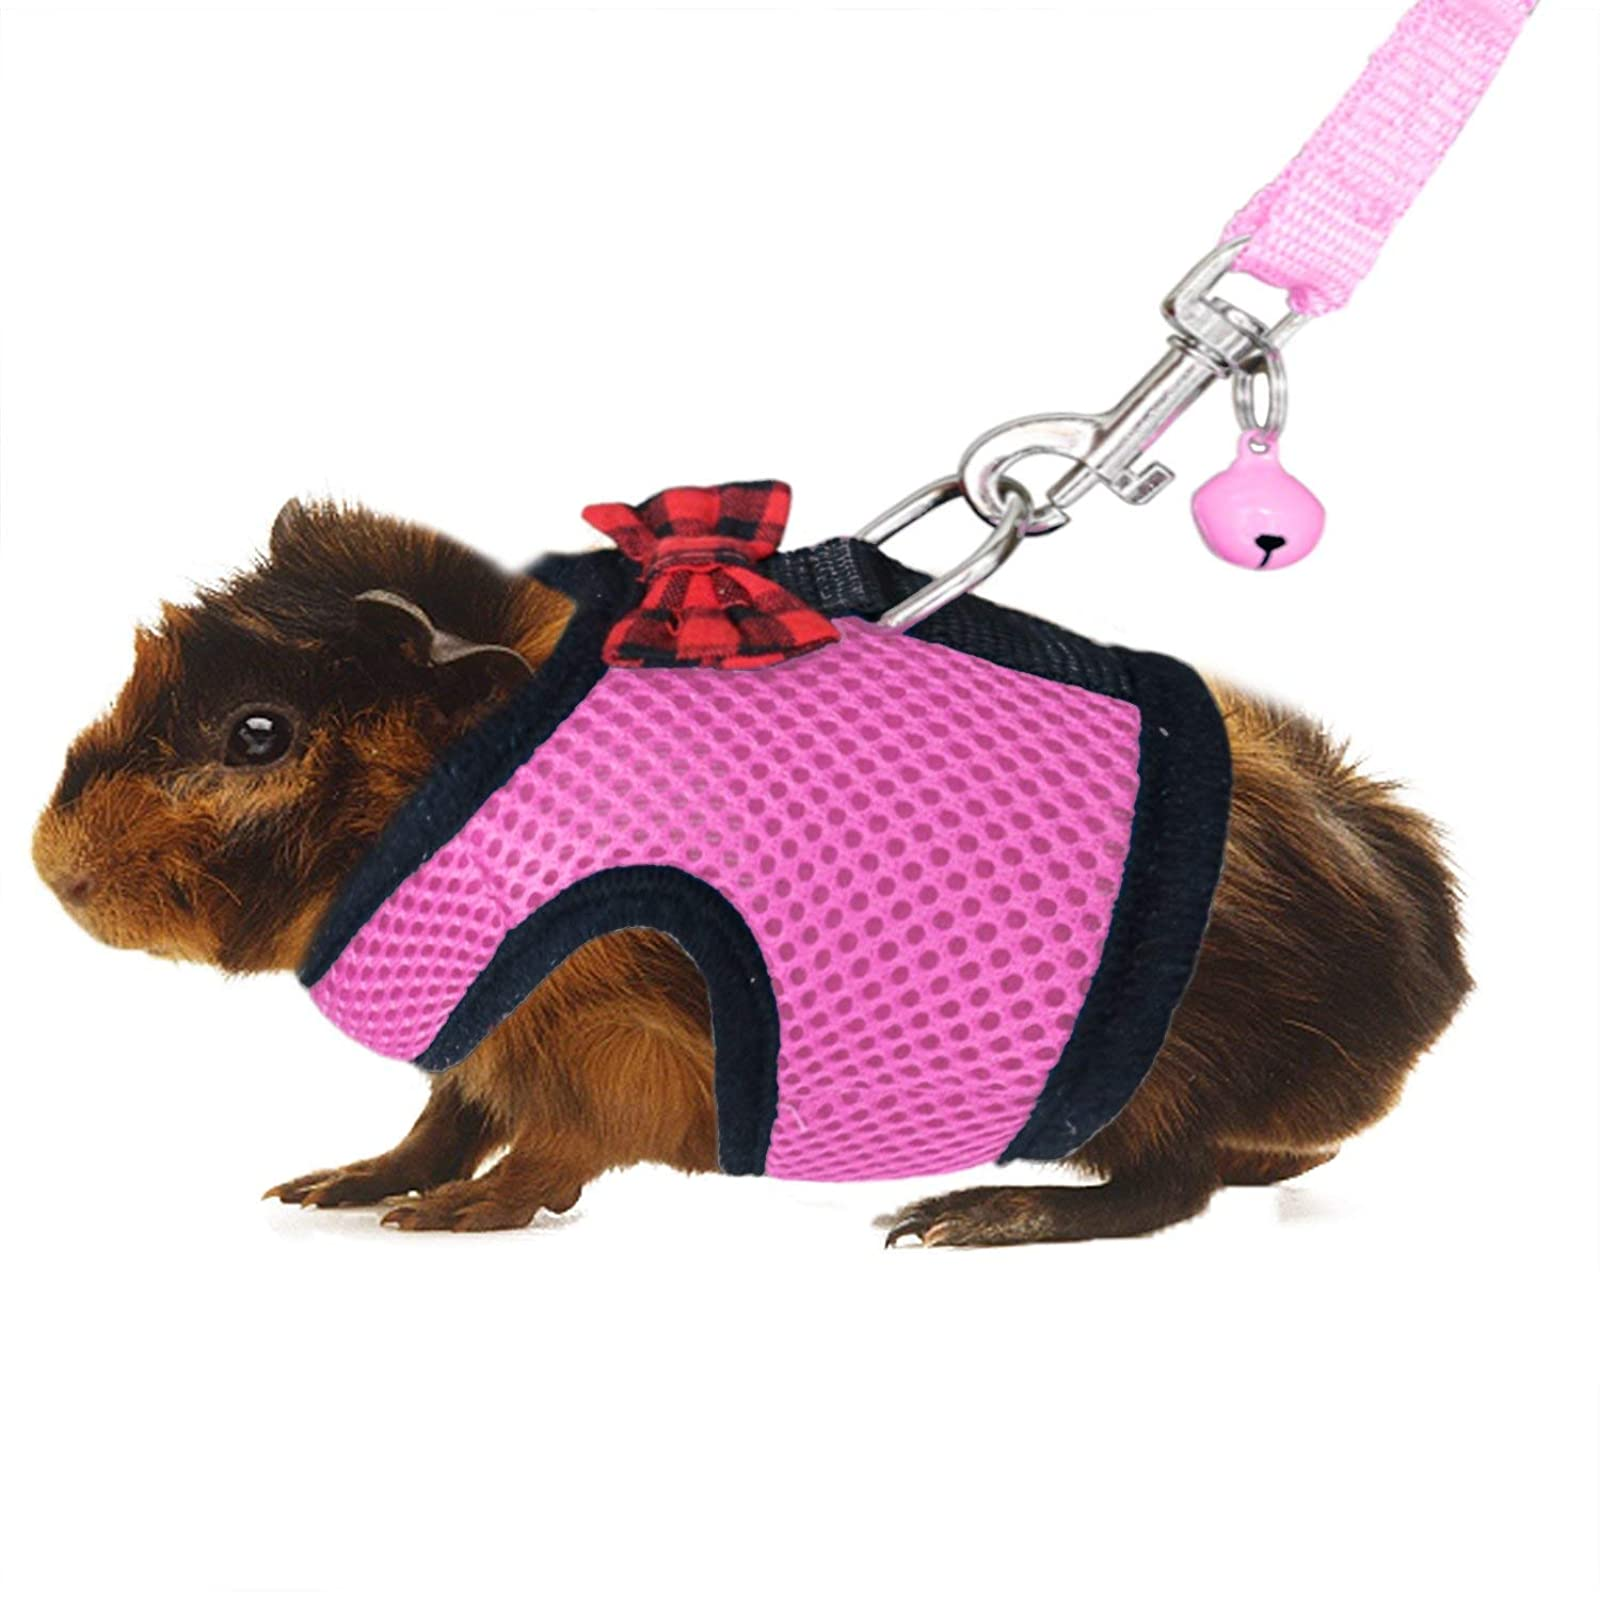 RYPET Ferret Harness and Leash - Soft Mesh - 5